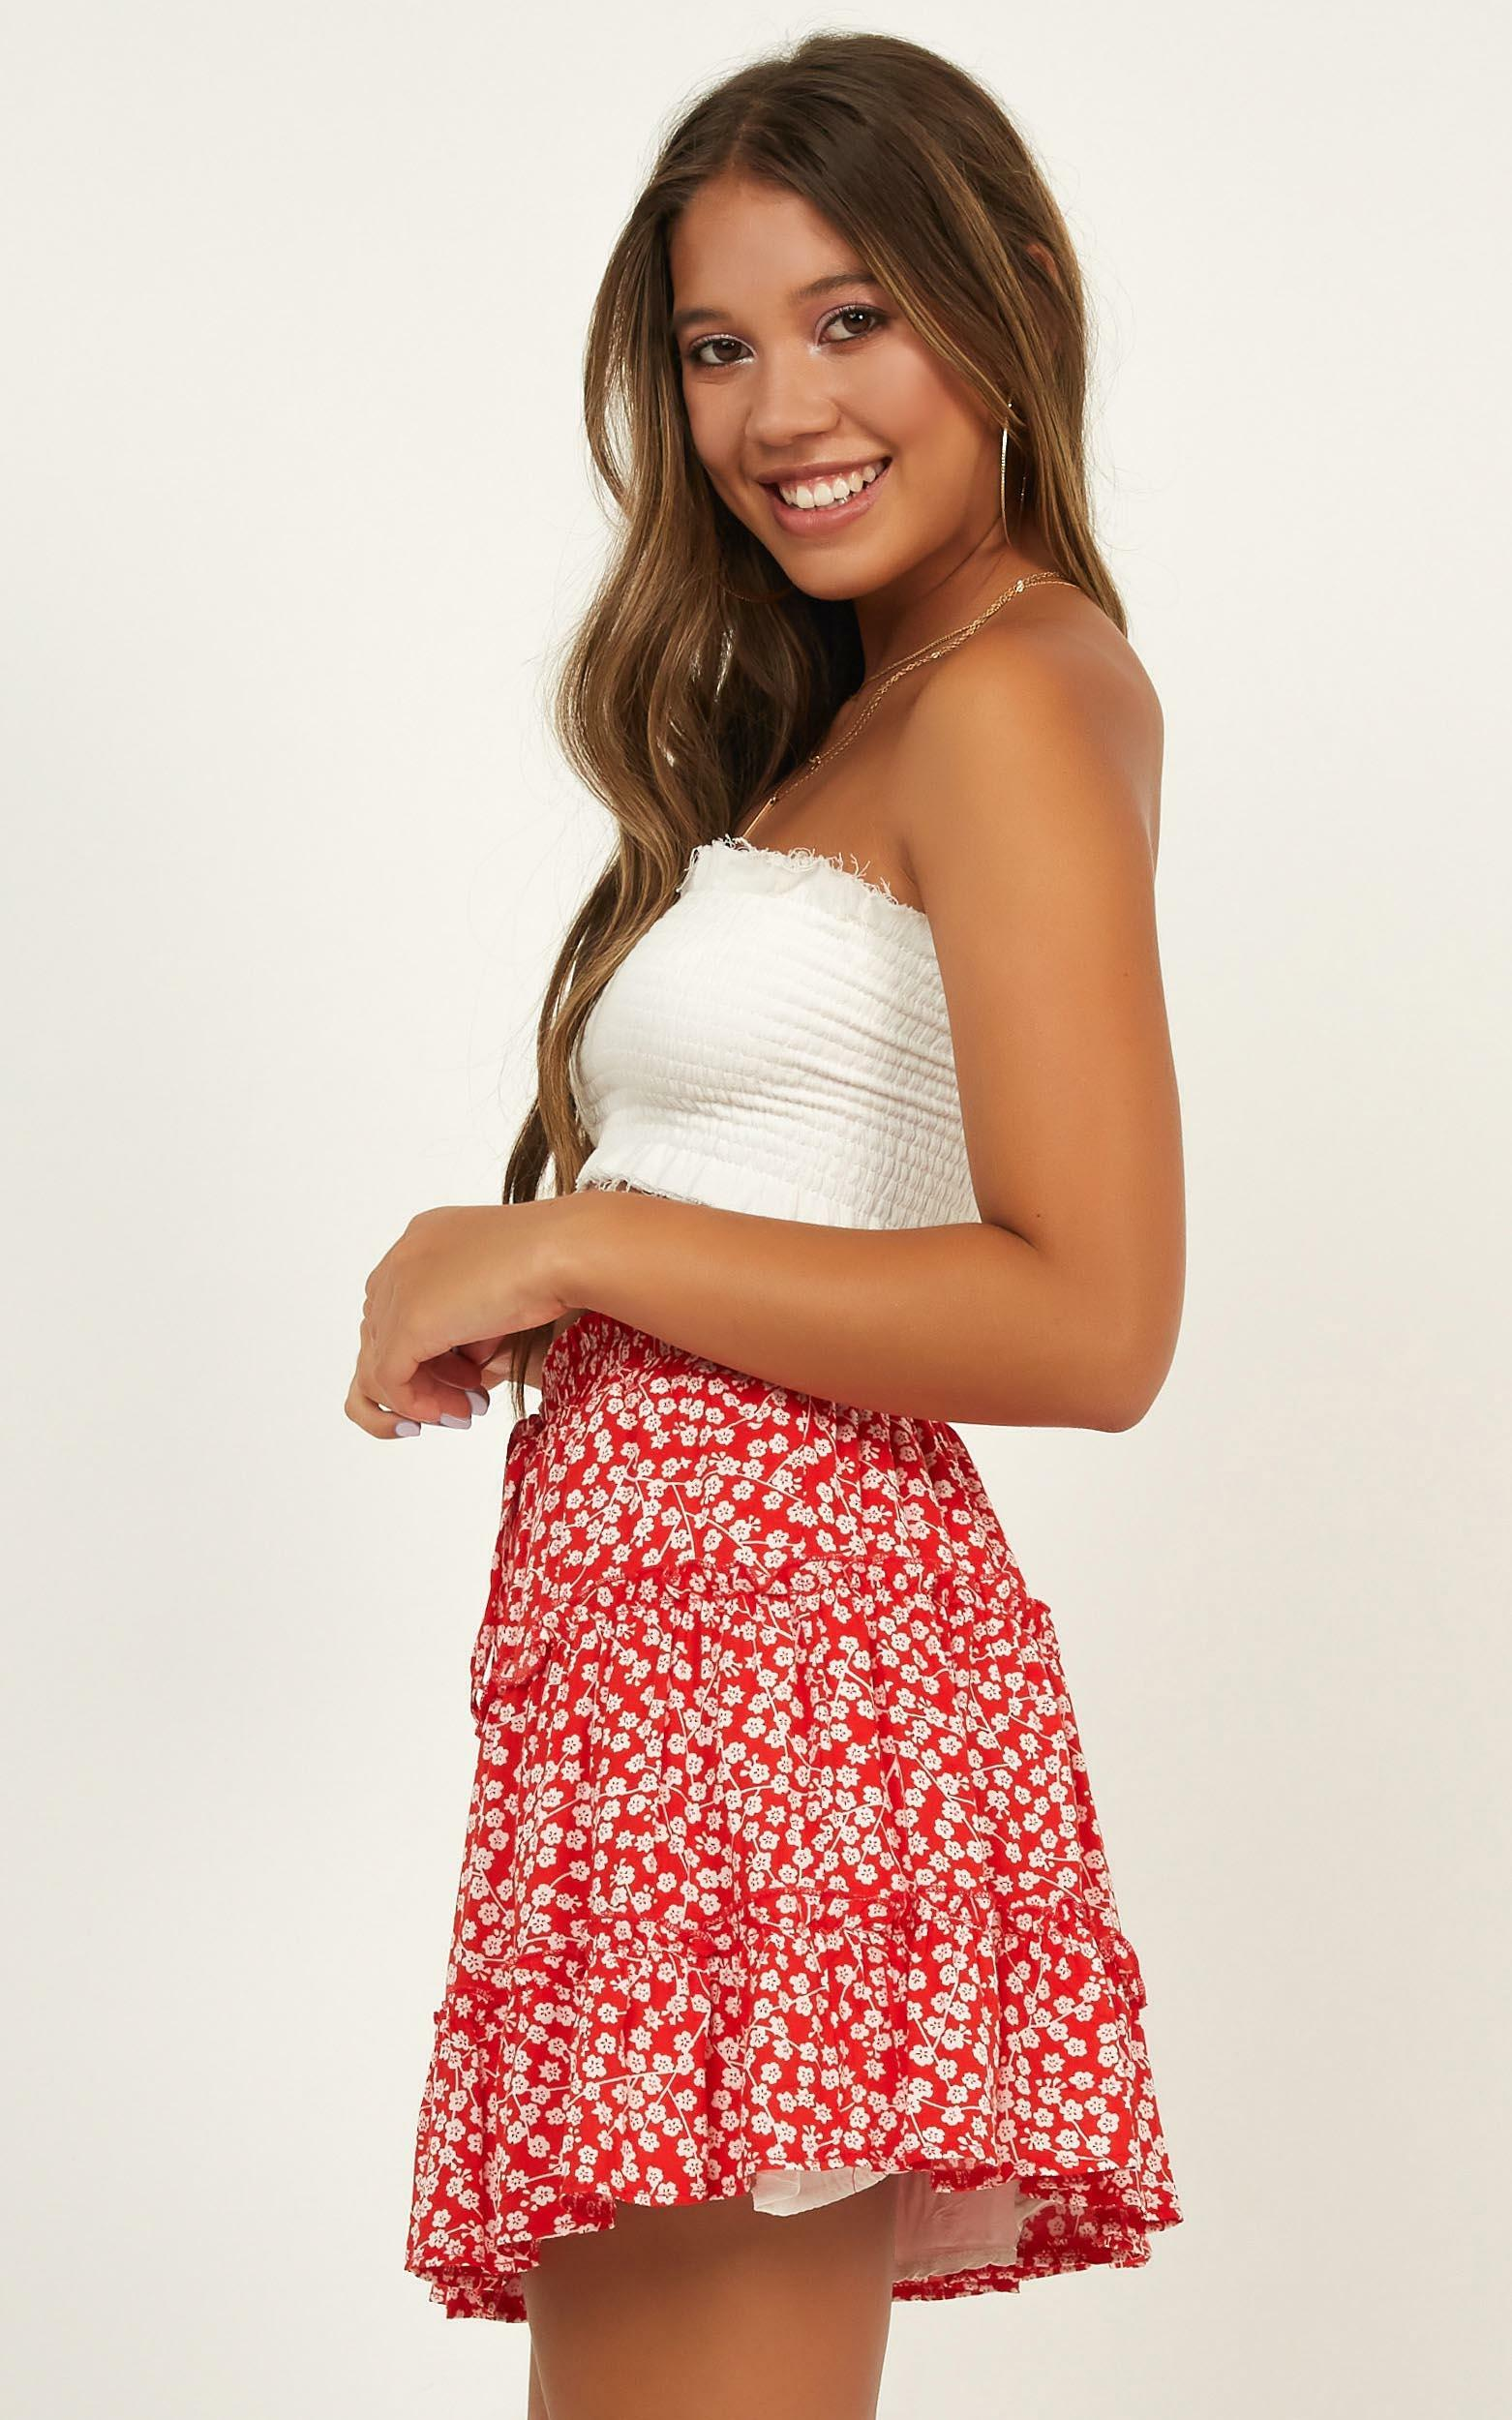 Ready For New Skirt In Red Floral - 18 (XXXL), Red, hi-res image number null